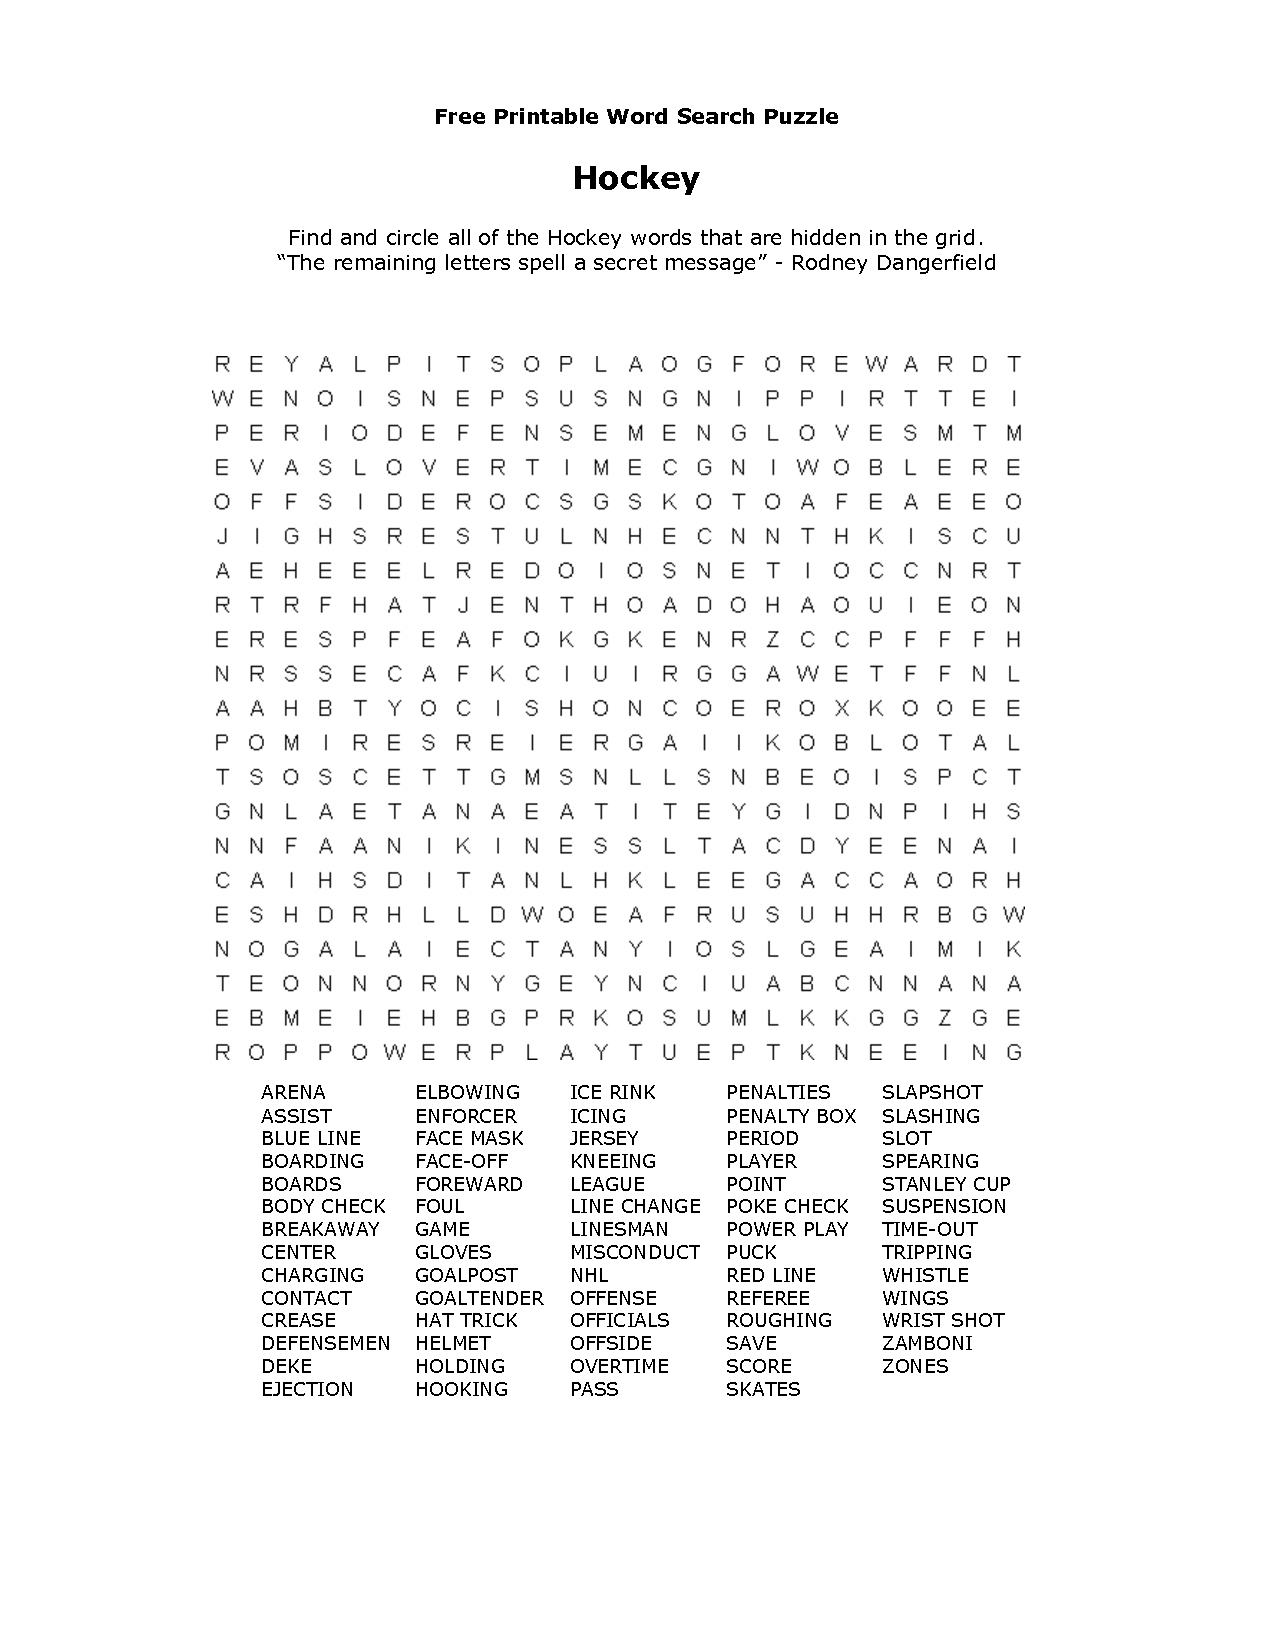 Free Printable Word Searches | Kiddo Shelter | Educative Puzzle For - Free Printable Crossword Puzzles Discovery